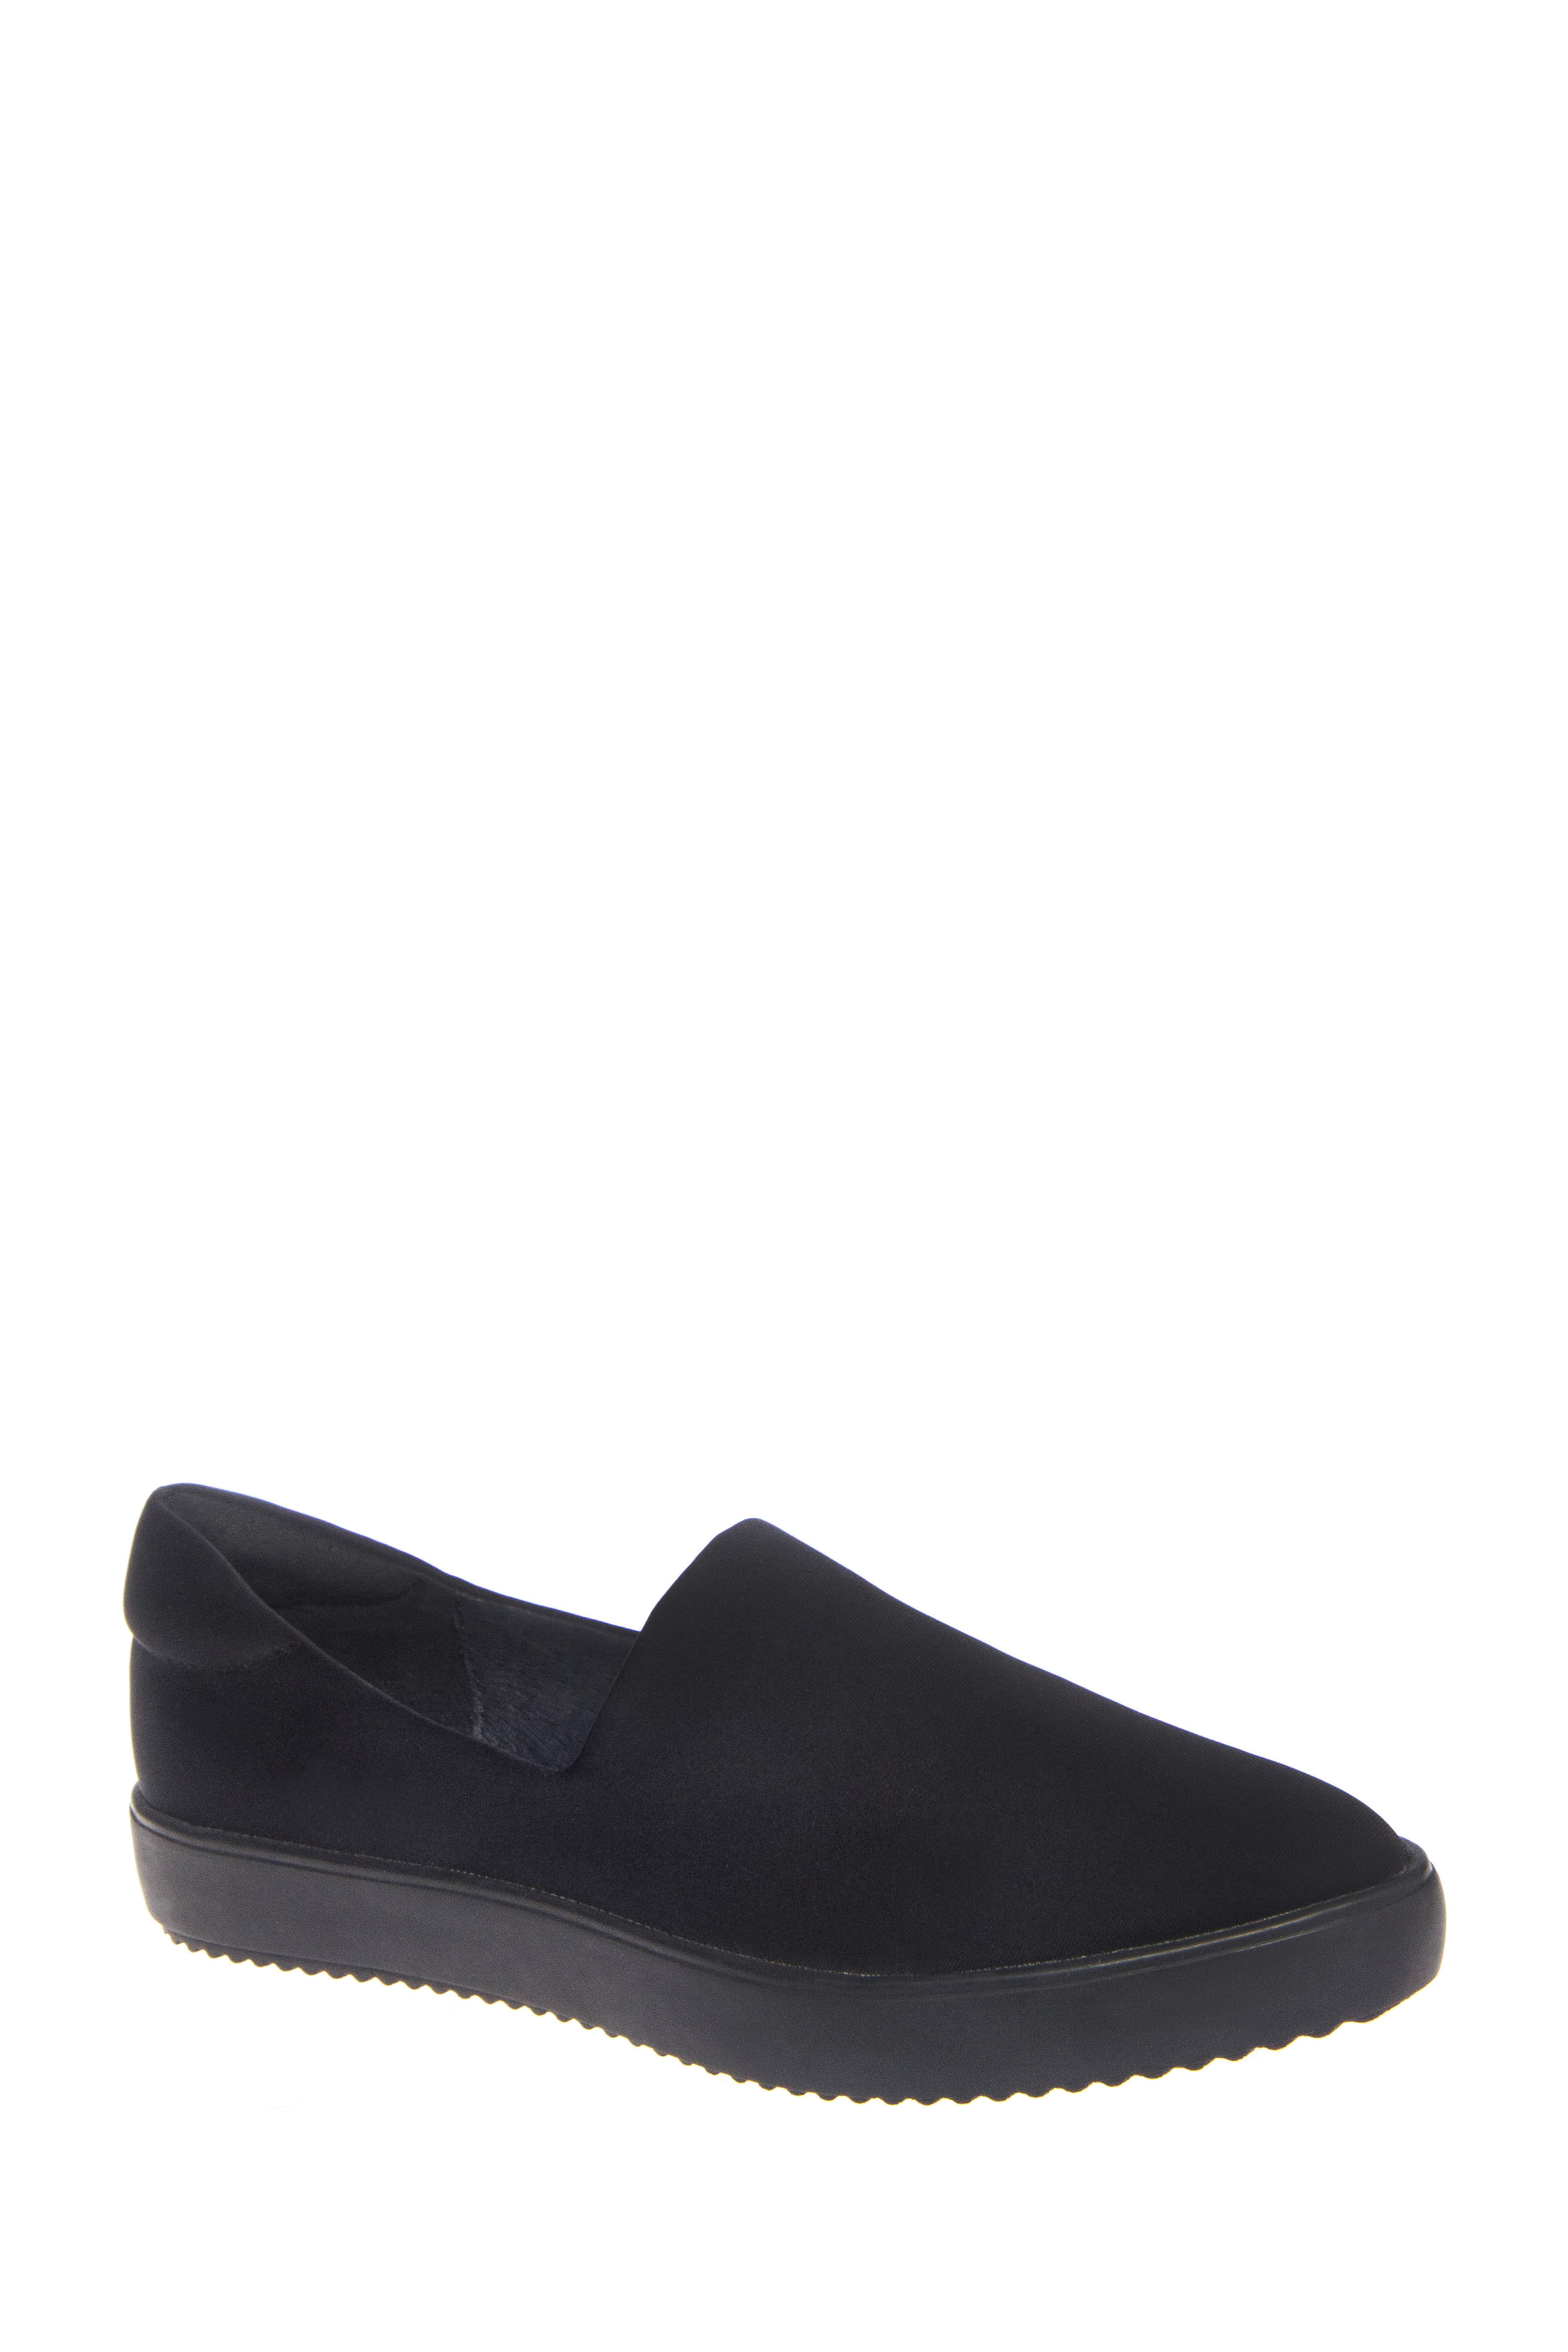 J Slides Dibbie Slip-On Sneakers